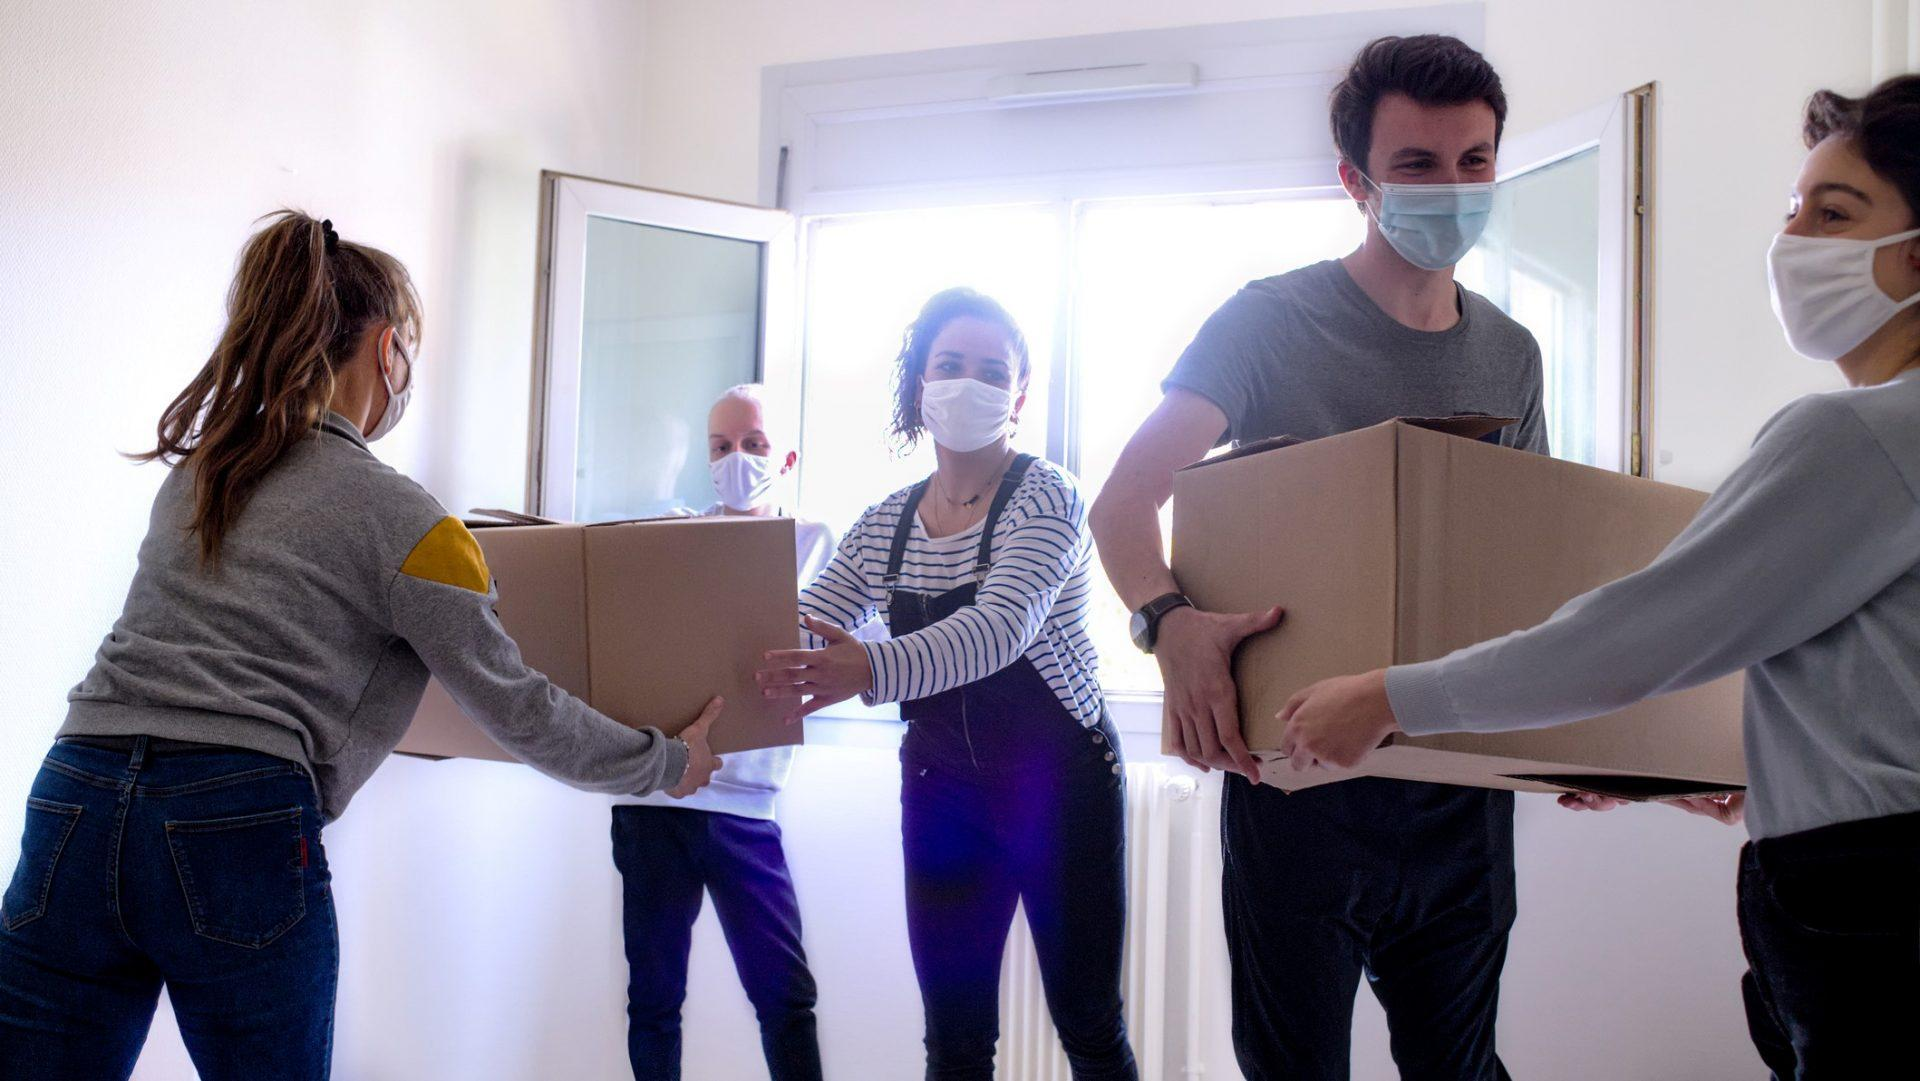 a group of young people carry moving boxes in a room of an apartment.